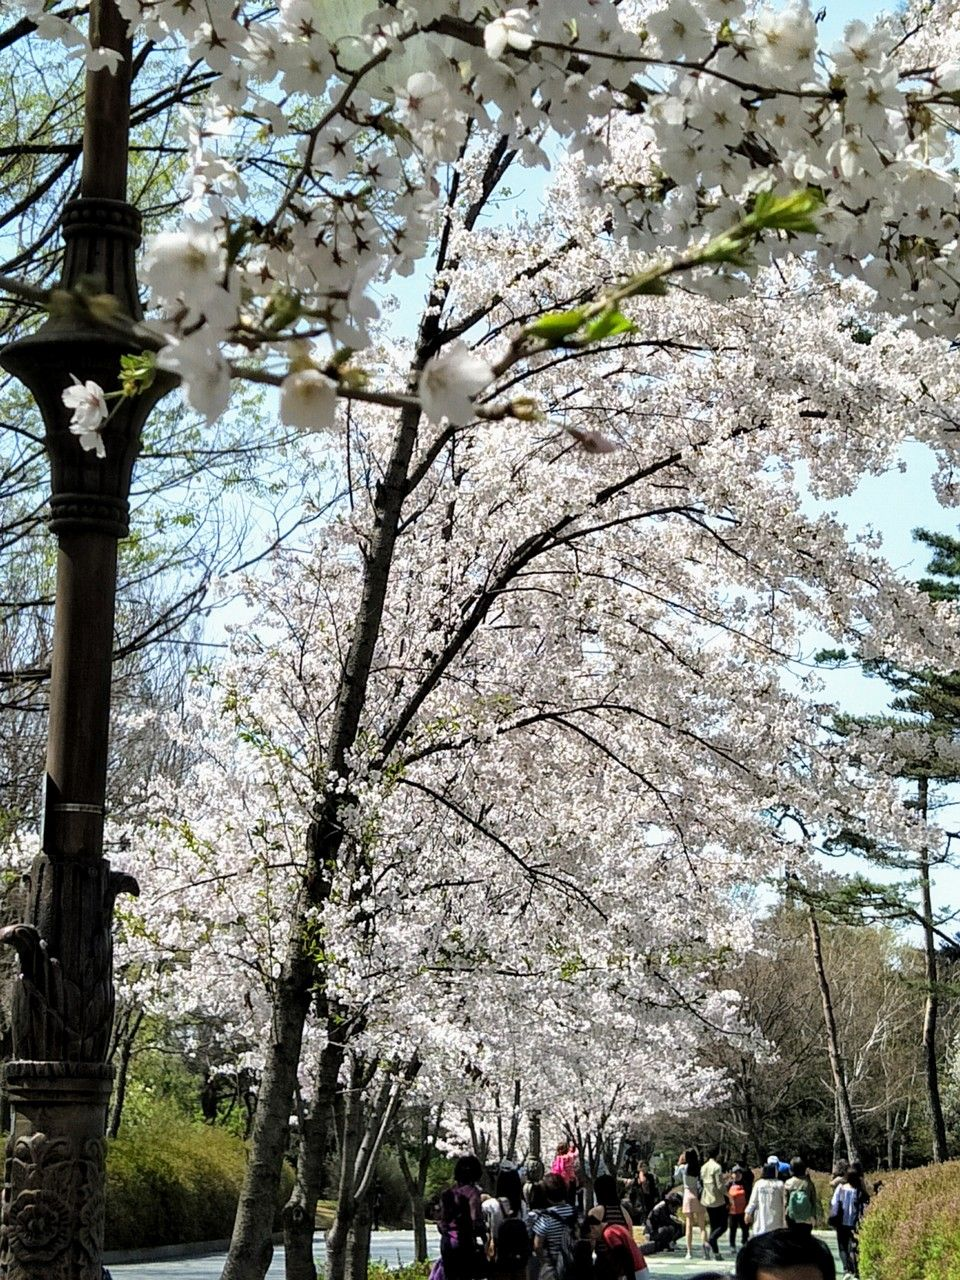 Top 5 Cherry Blossom Festivals In South Korea In 2017 Cherry Blossom Festival Cherry Blossom Flower Festival